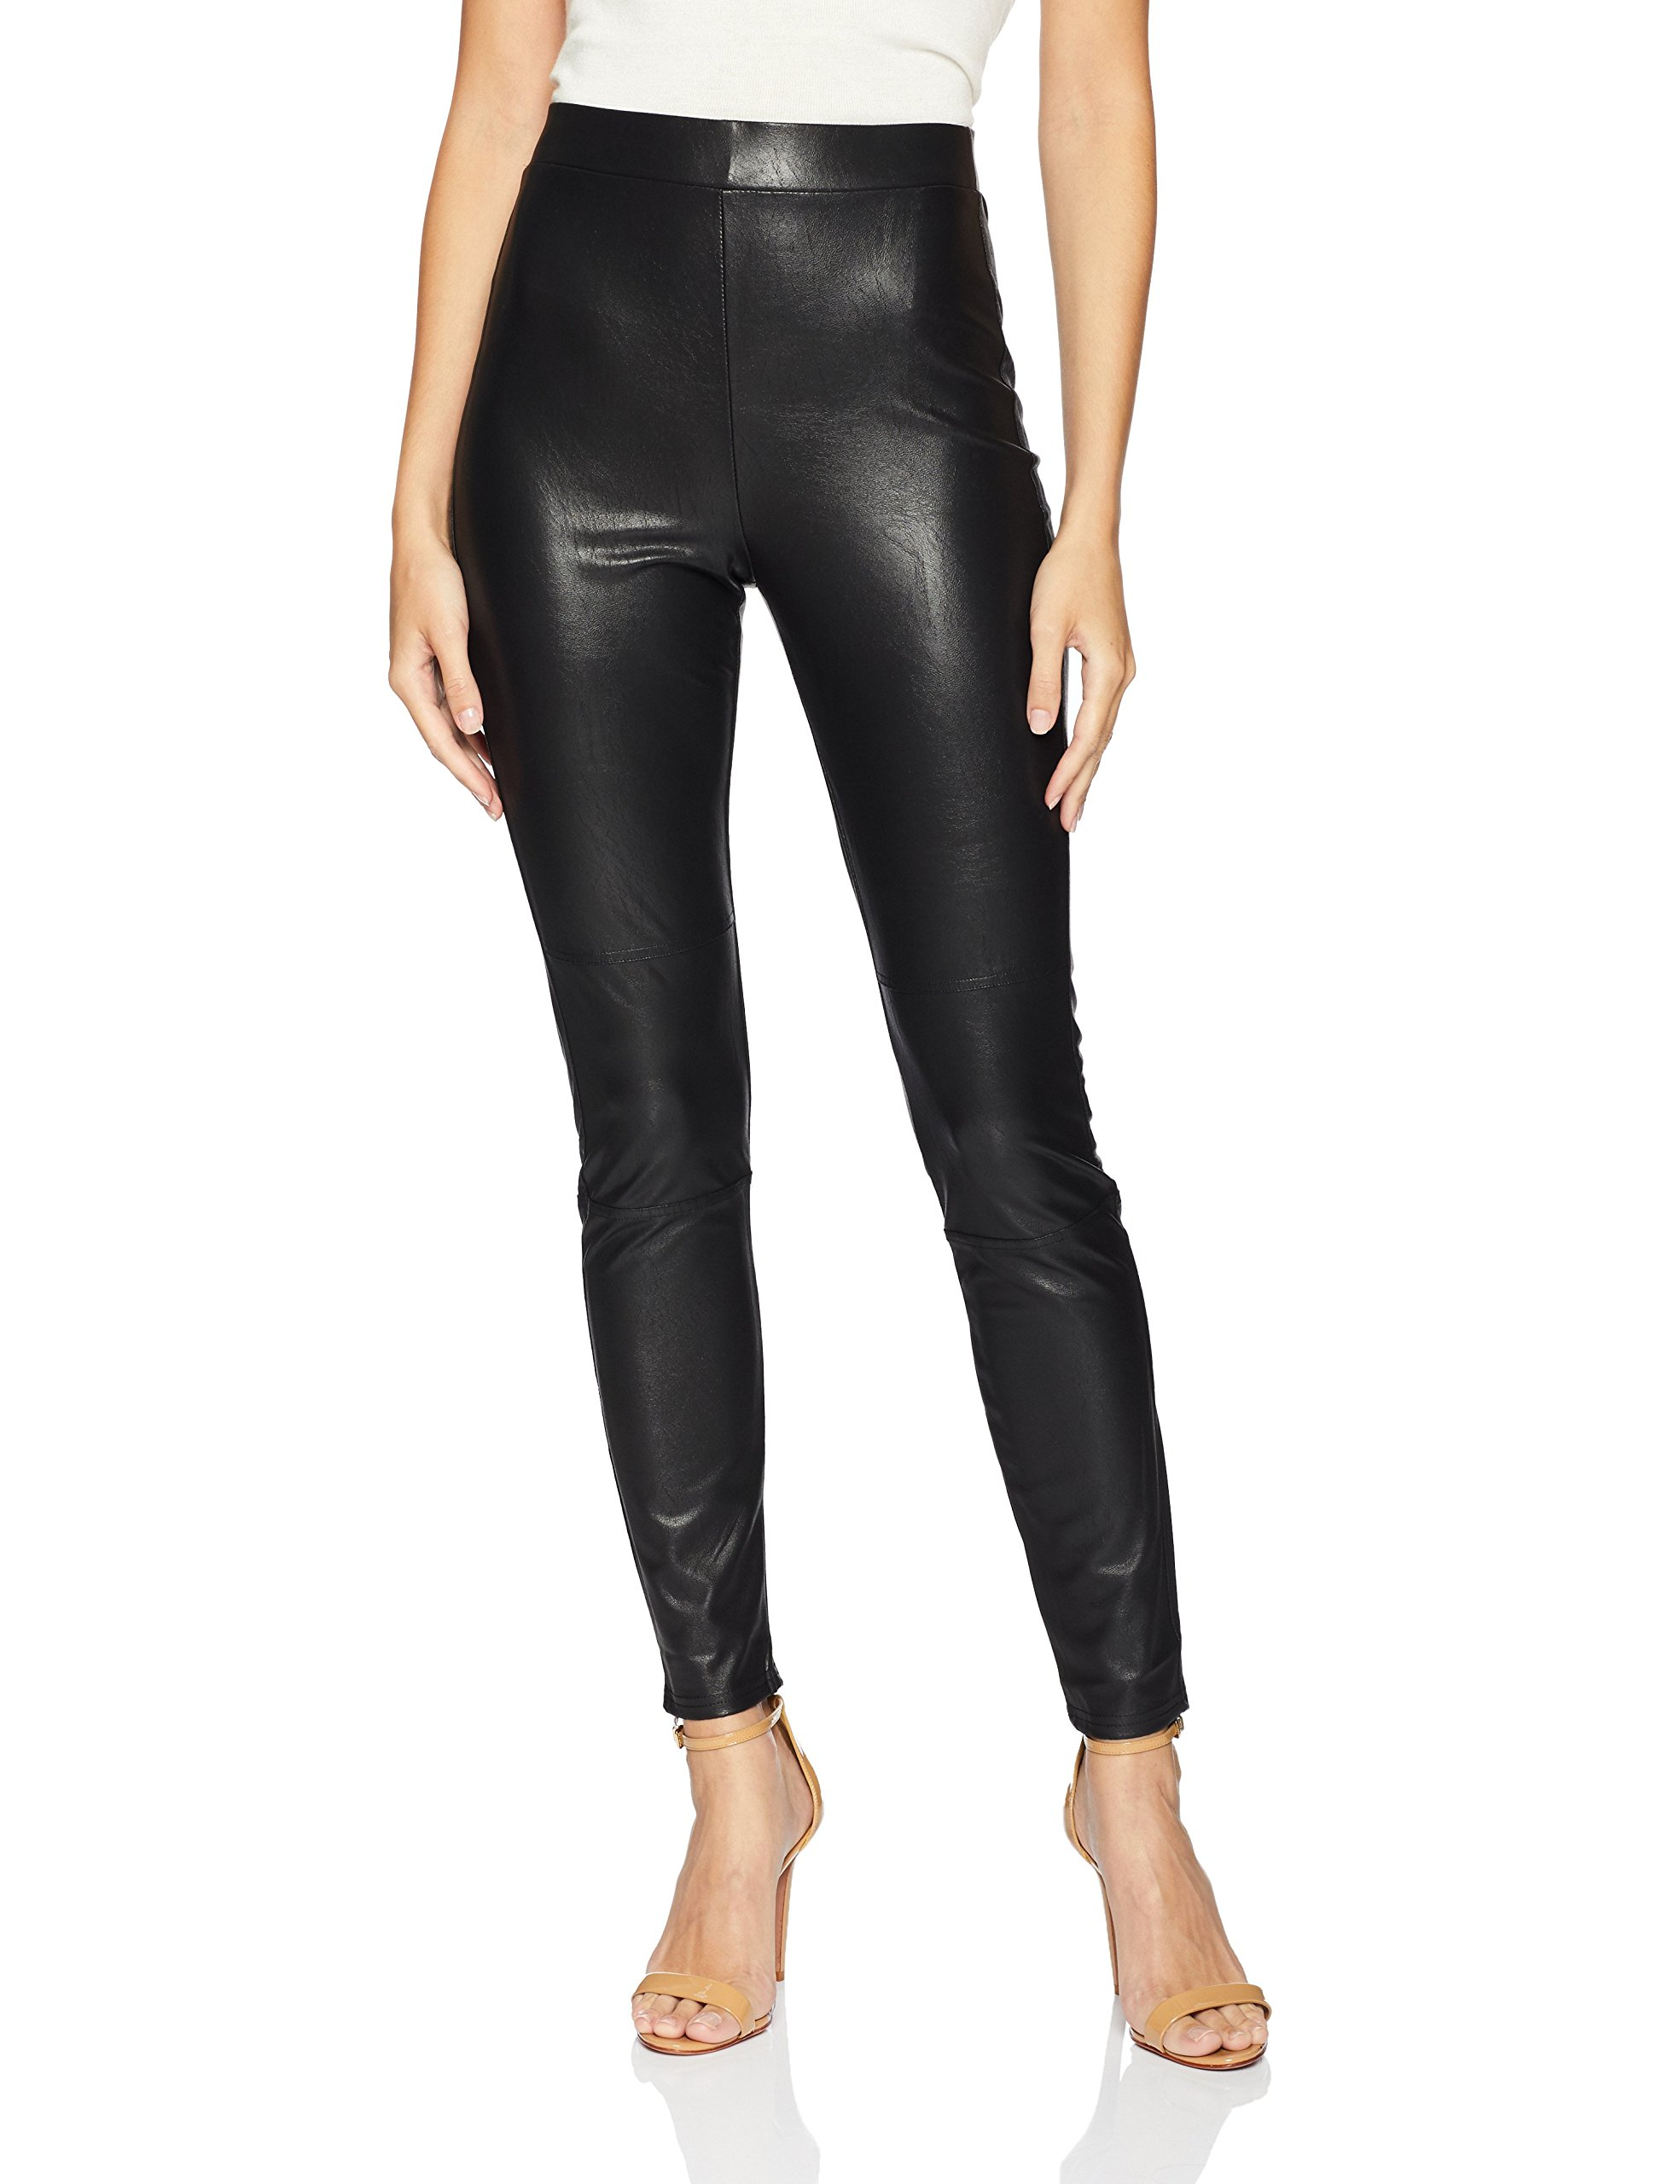 Splendid Women's Downtown Faux Leather Leggings, Black, X-Small